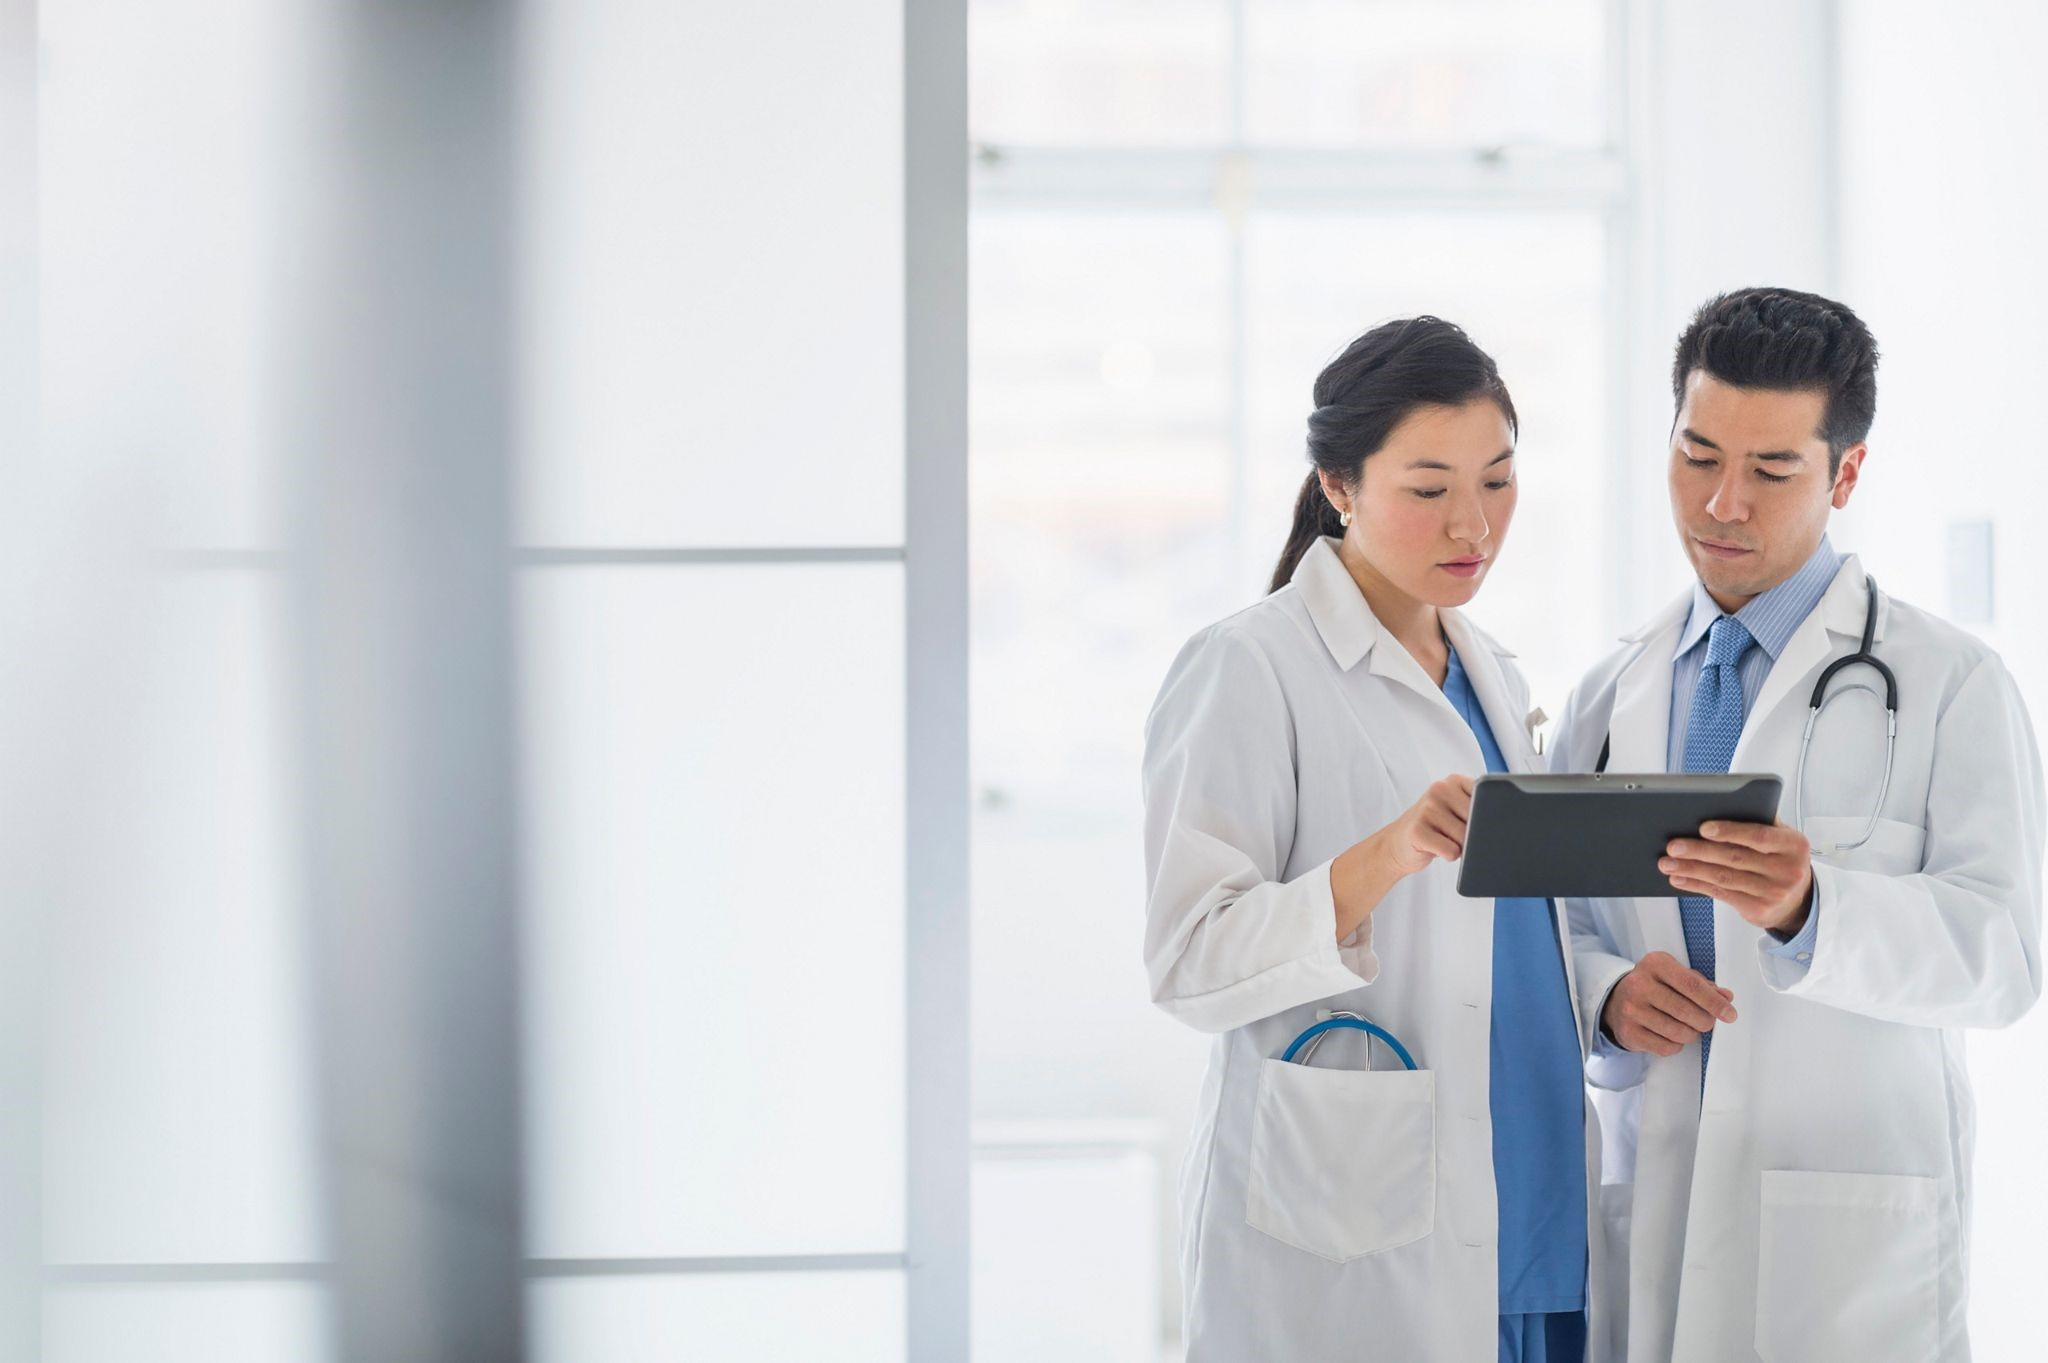 Report: Healthcare leaders have an optimistic outlook beyond COVID-19